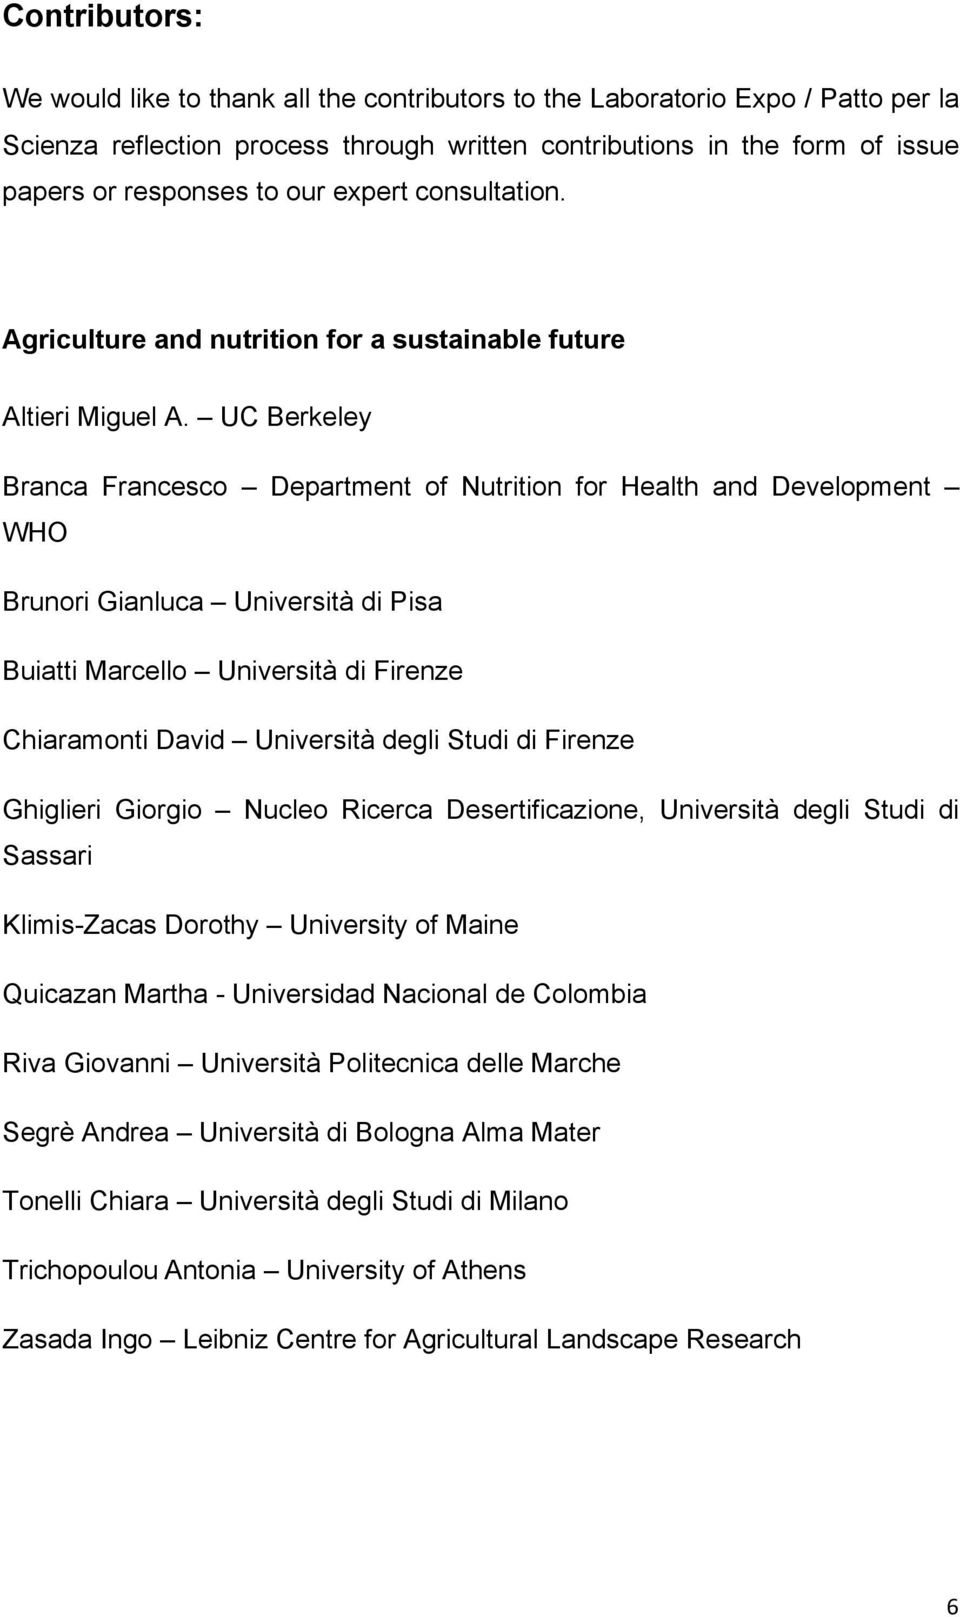 UC Berkeley Branca Francesco Department of Nutrition for Health and Development WHO Brunori Gianluca Università di Pisa Buiatti Marcello Università di Firenze Chiaramonti David Università degli Studi